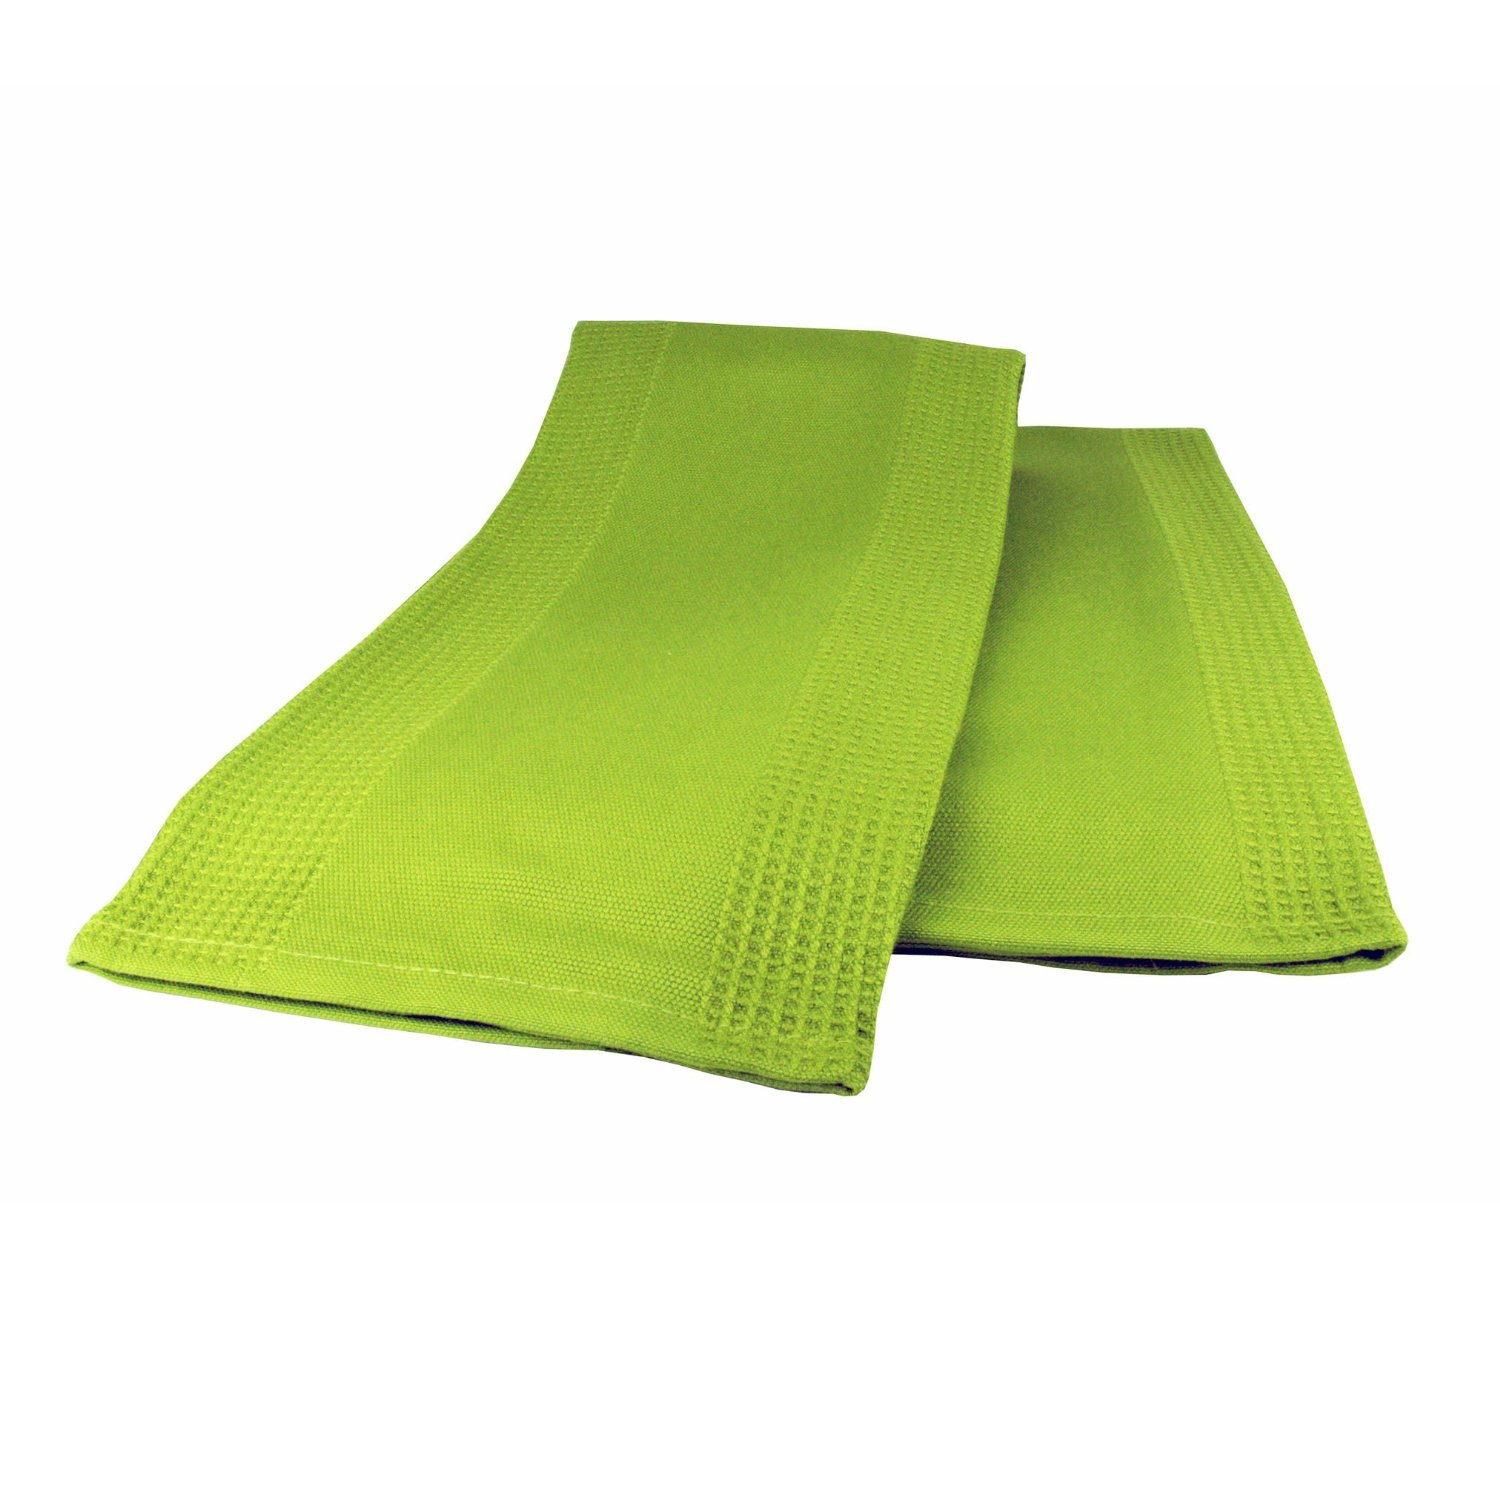 Bamboo-Derived Dish Towels